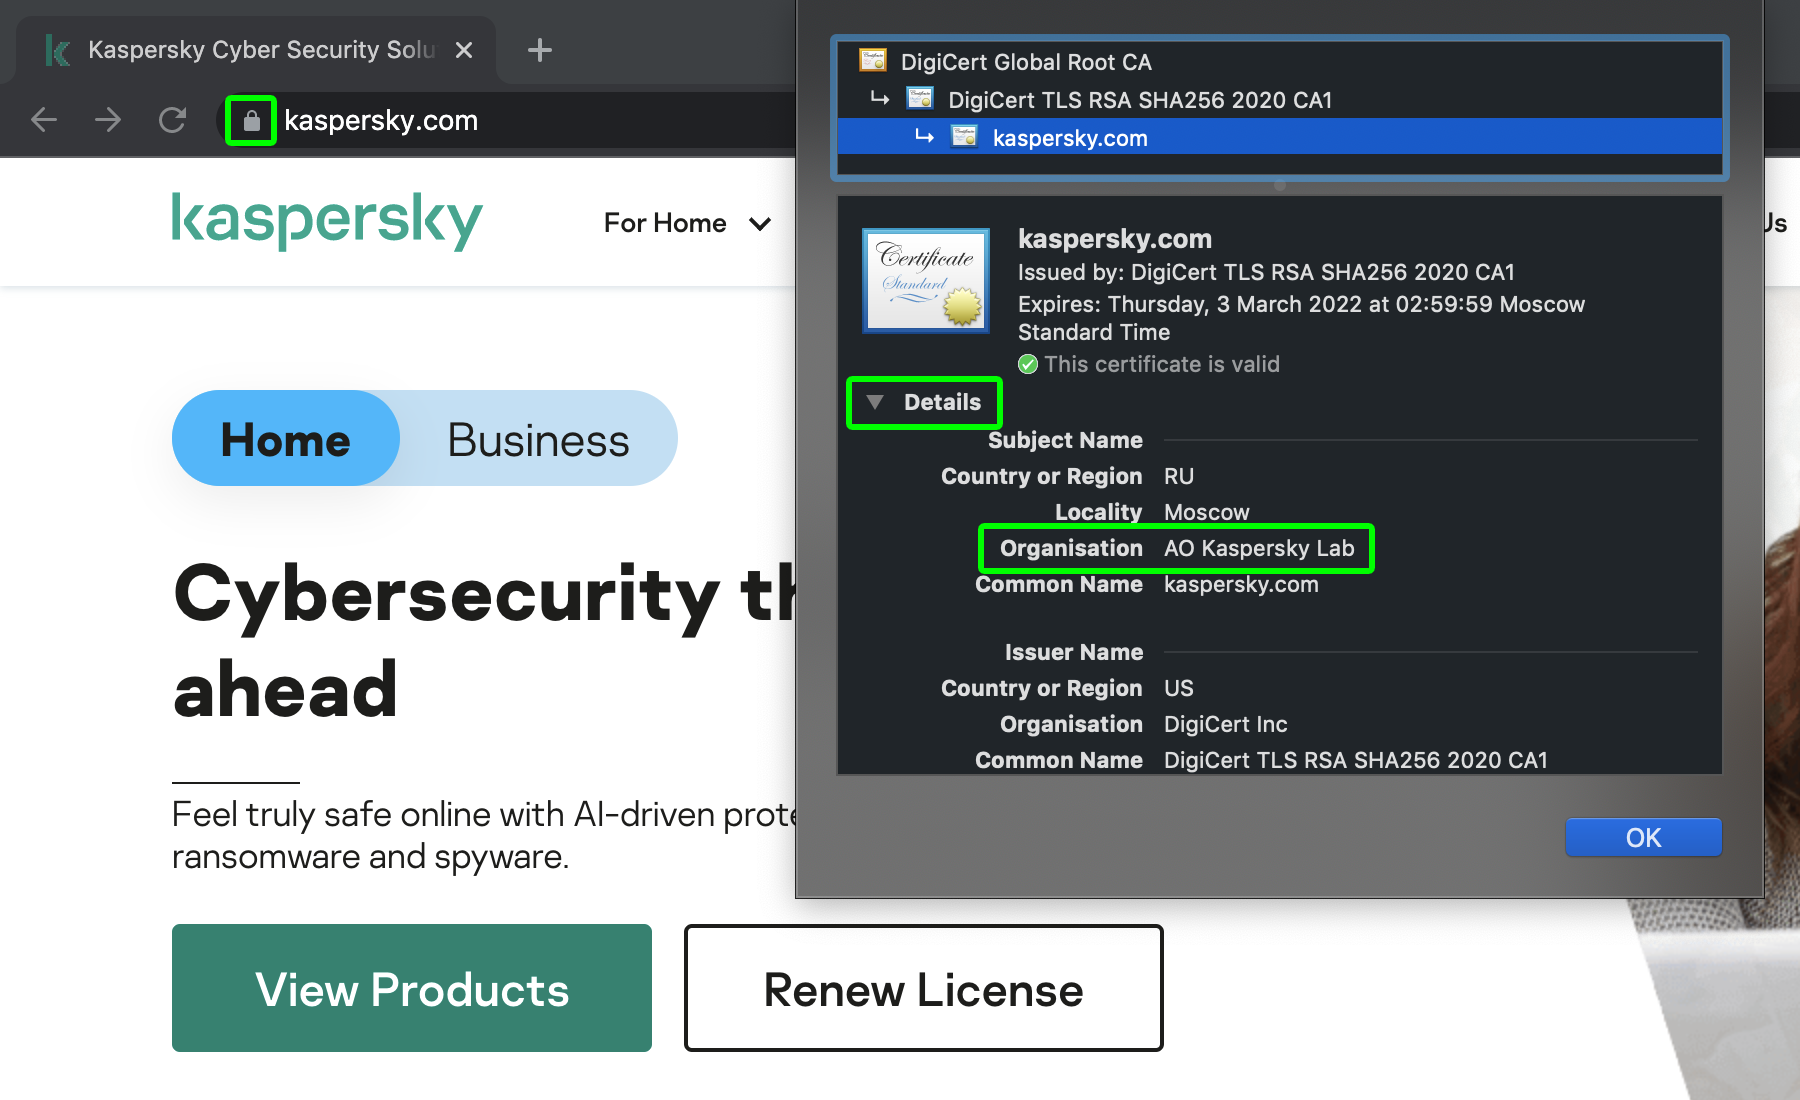 How to check who owns the website: Look at SSL-certificate details